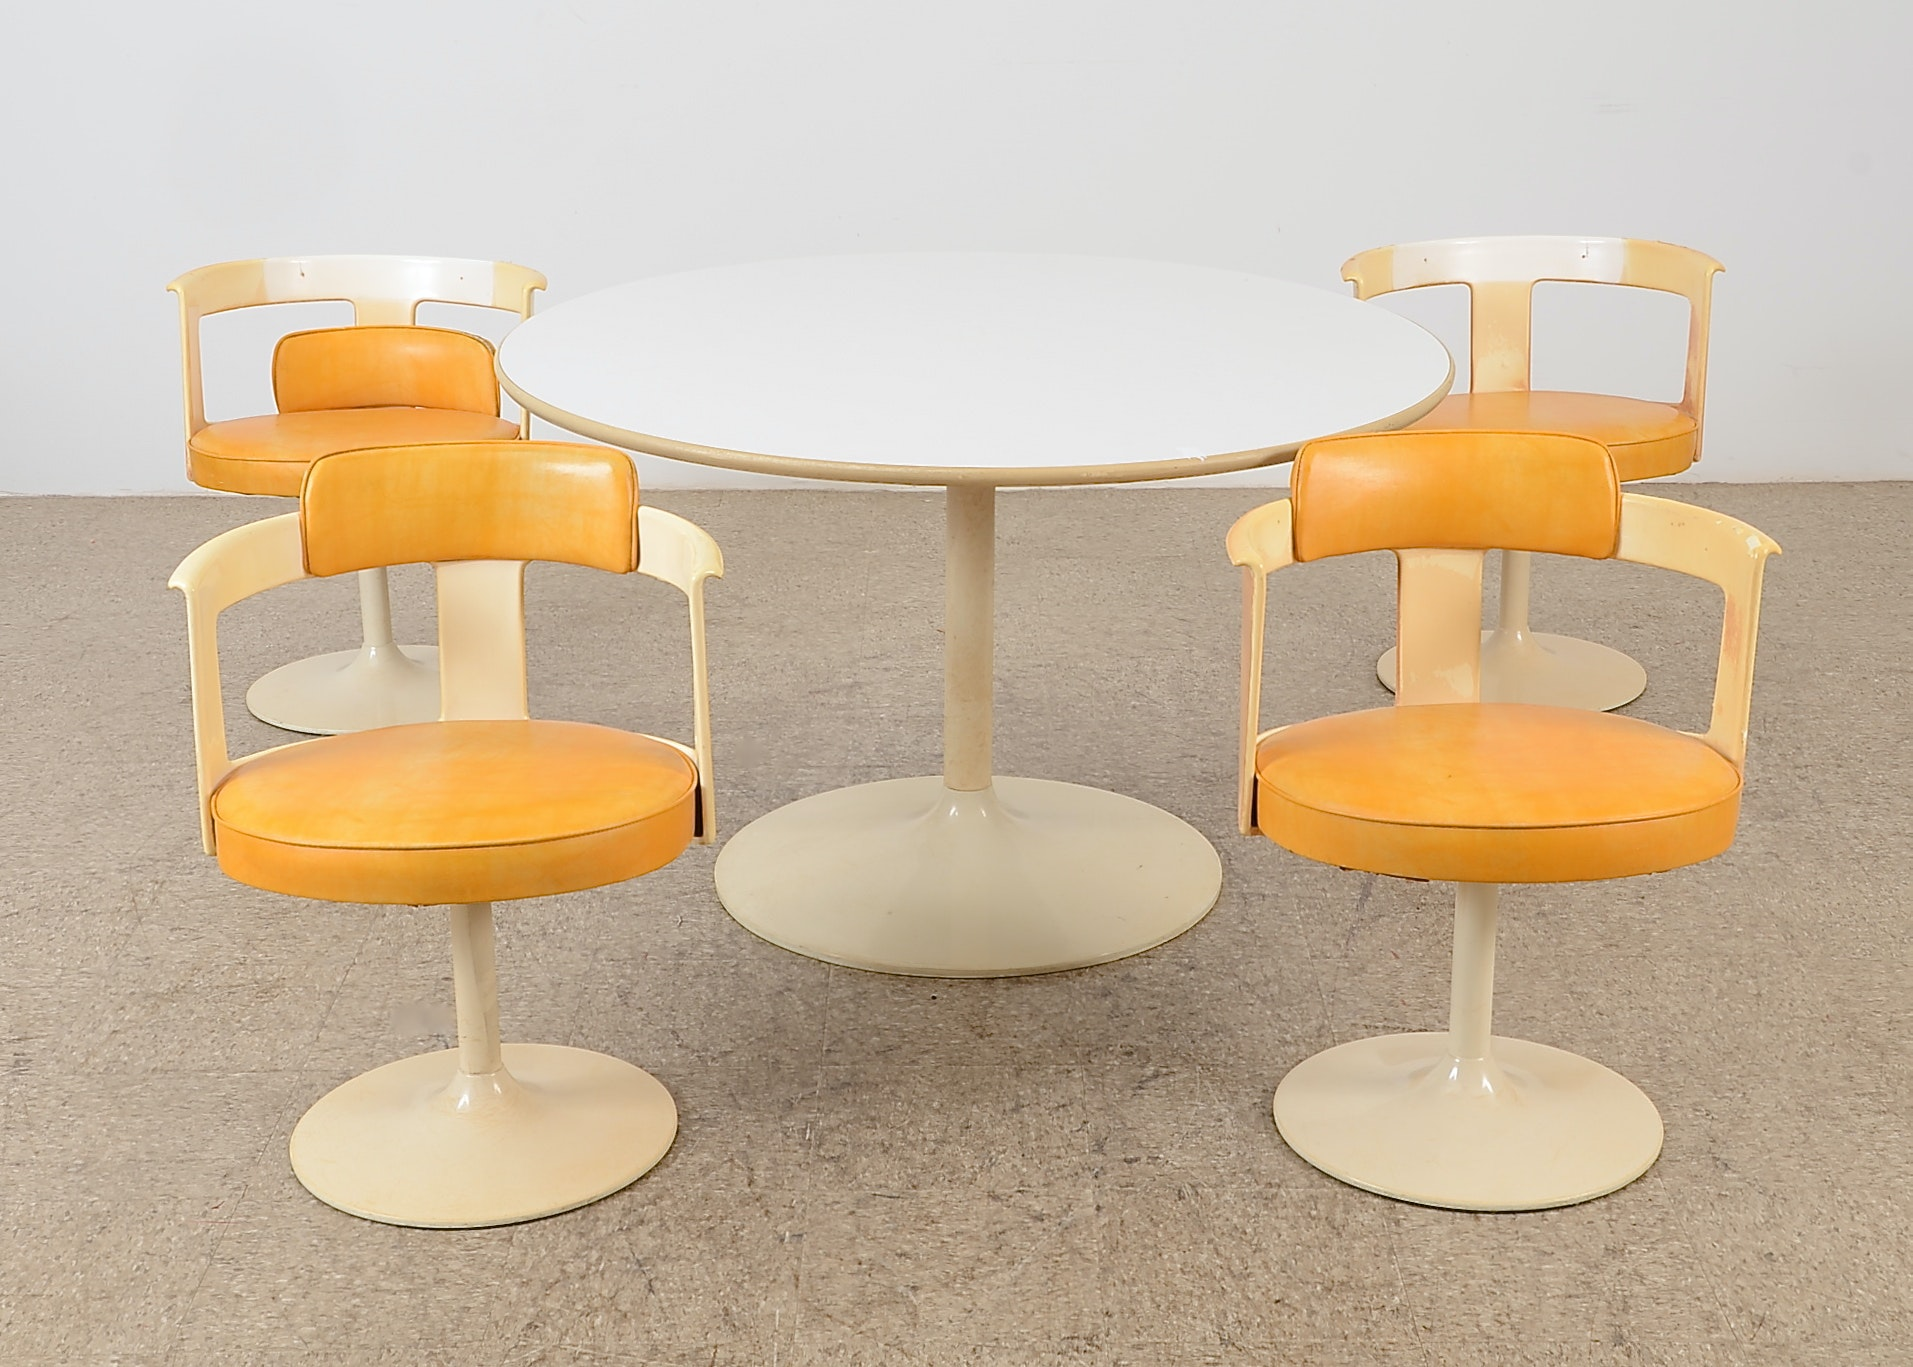 Tulip Style Dining Table And Chairs By Daystrom Furniture ...